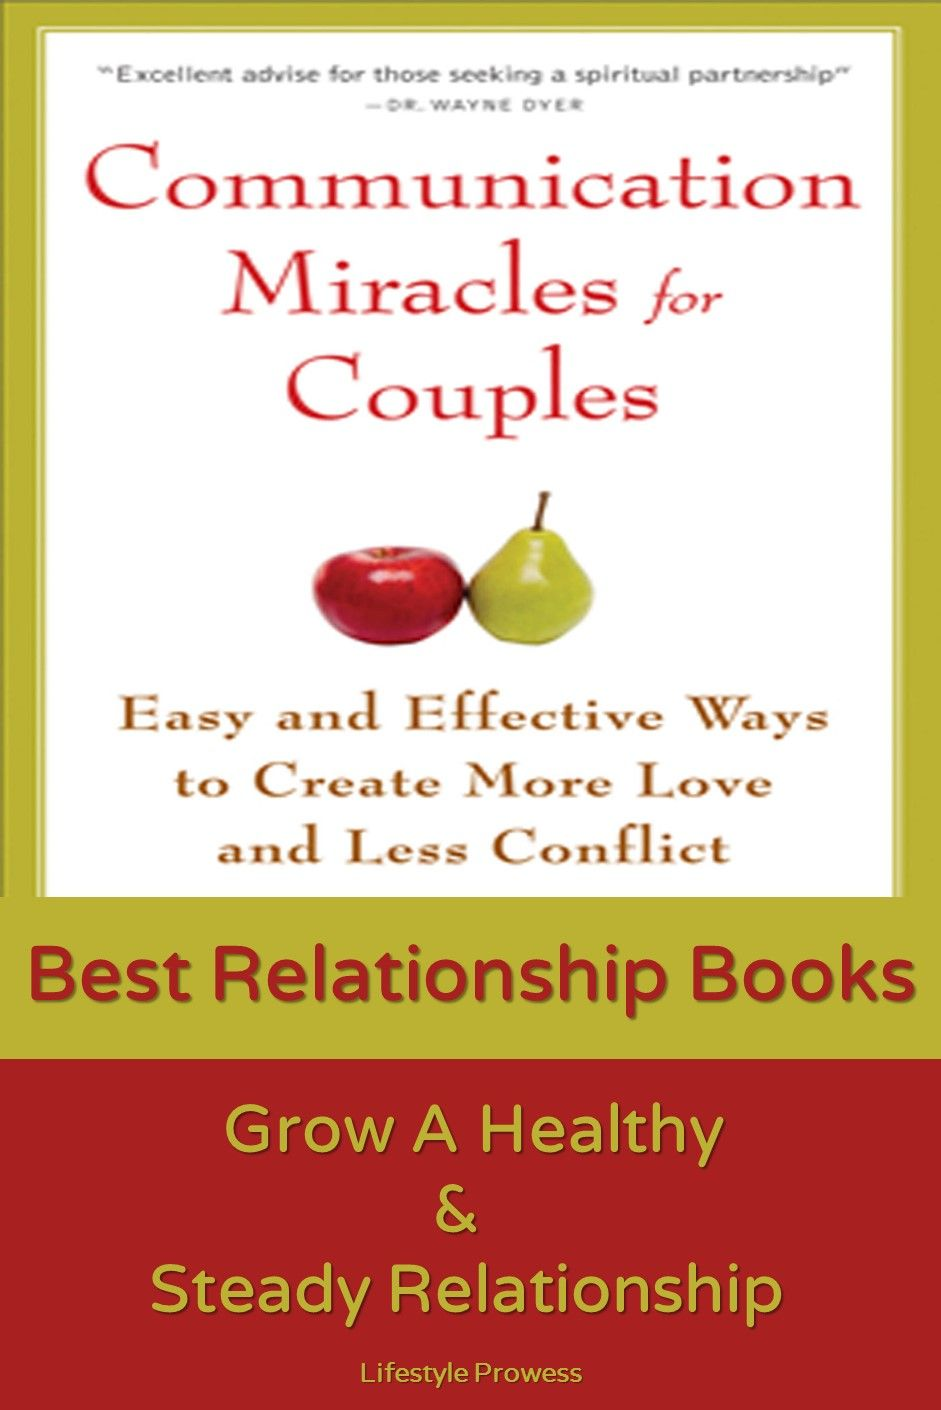 Best relationship books for dating couples